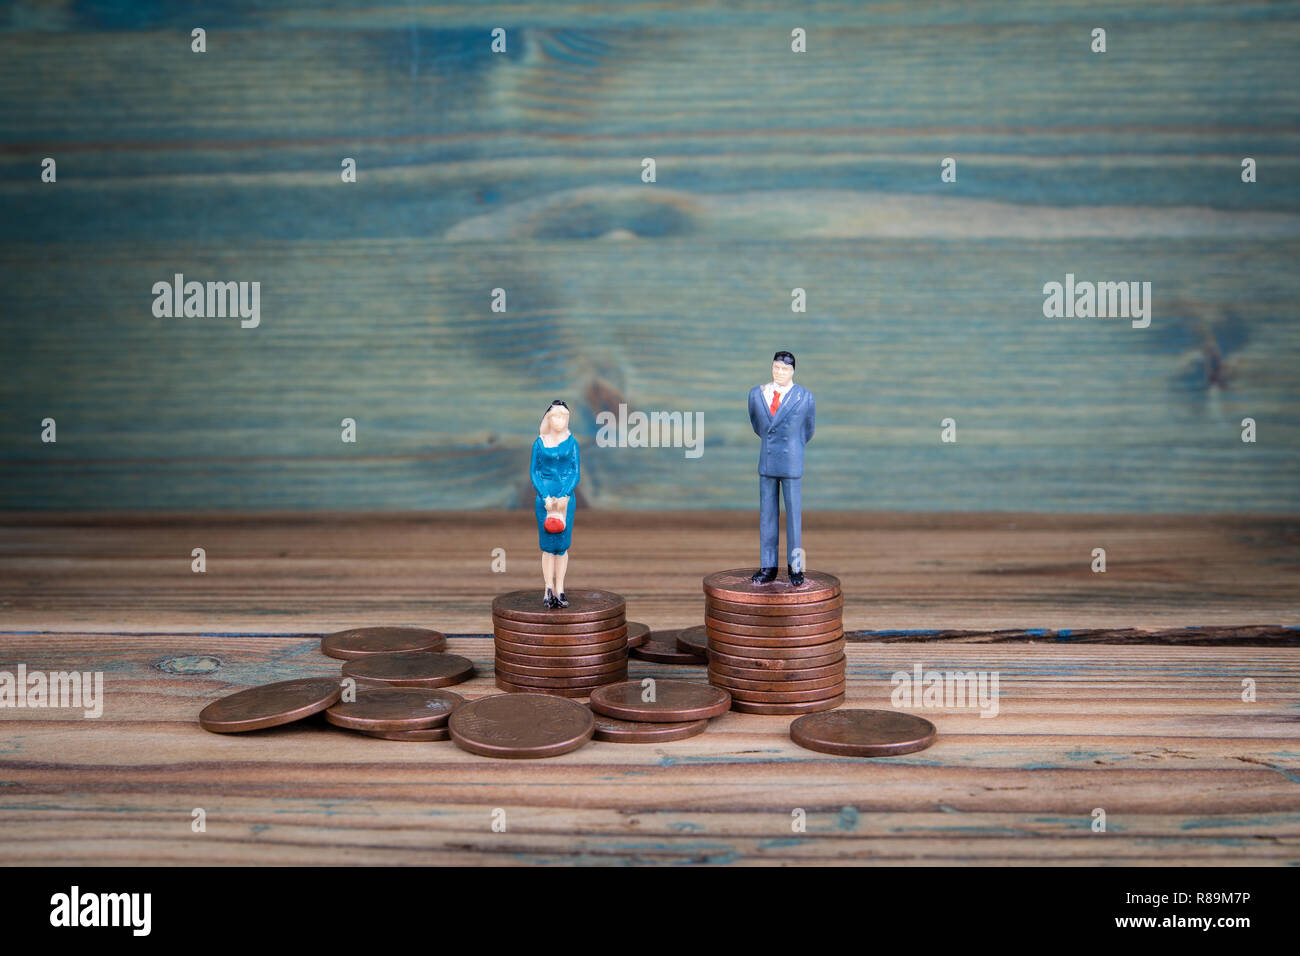 Miniature people standing on piles of coins Stock Photo